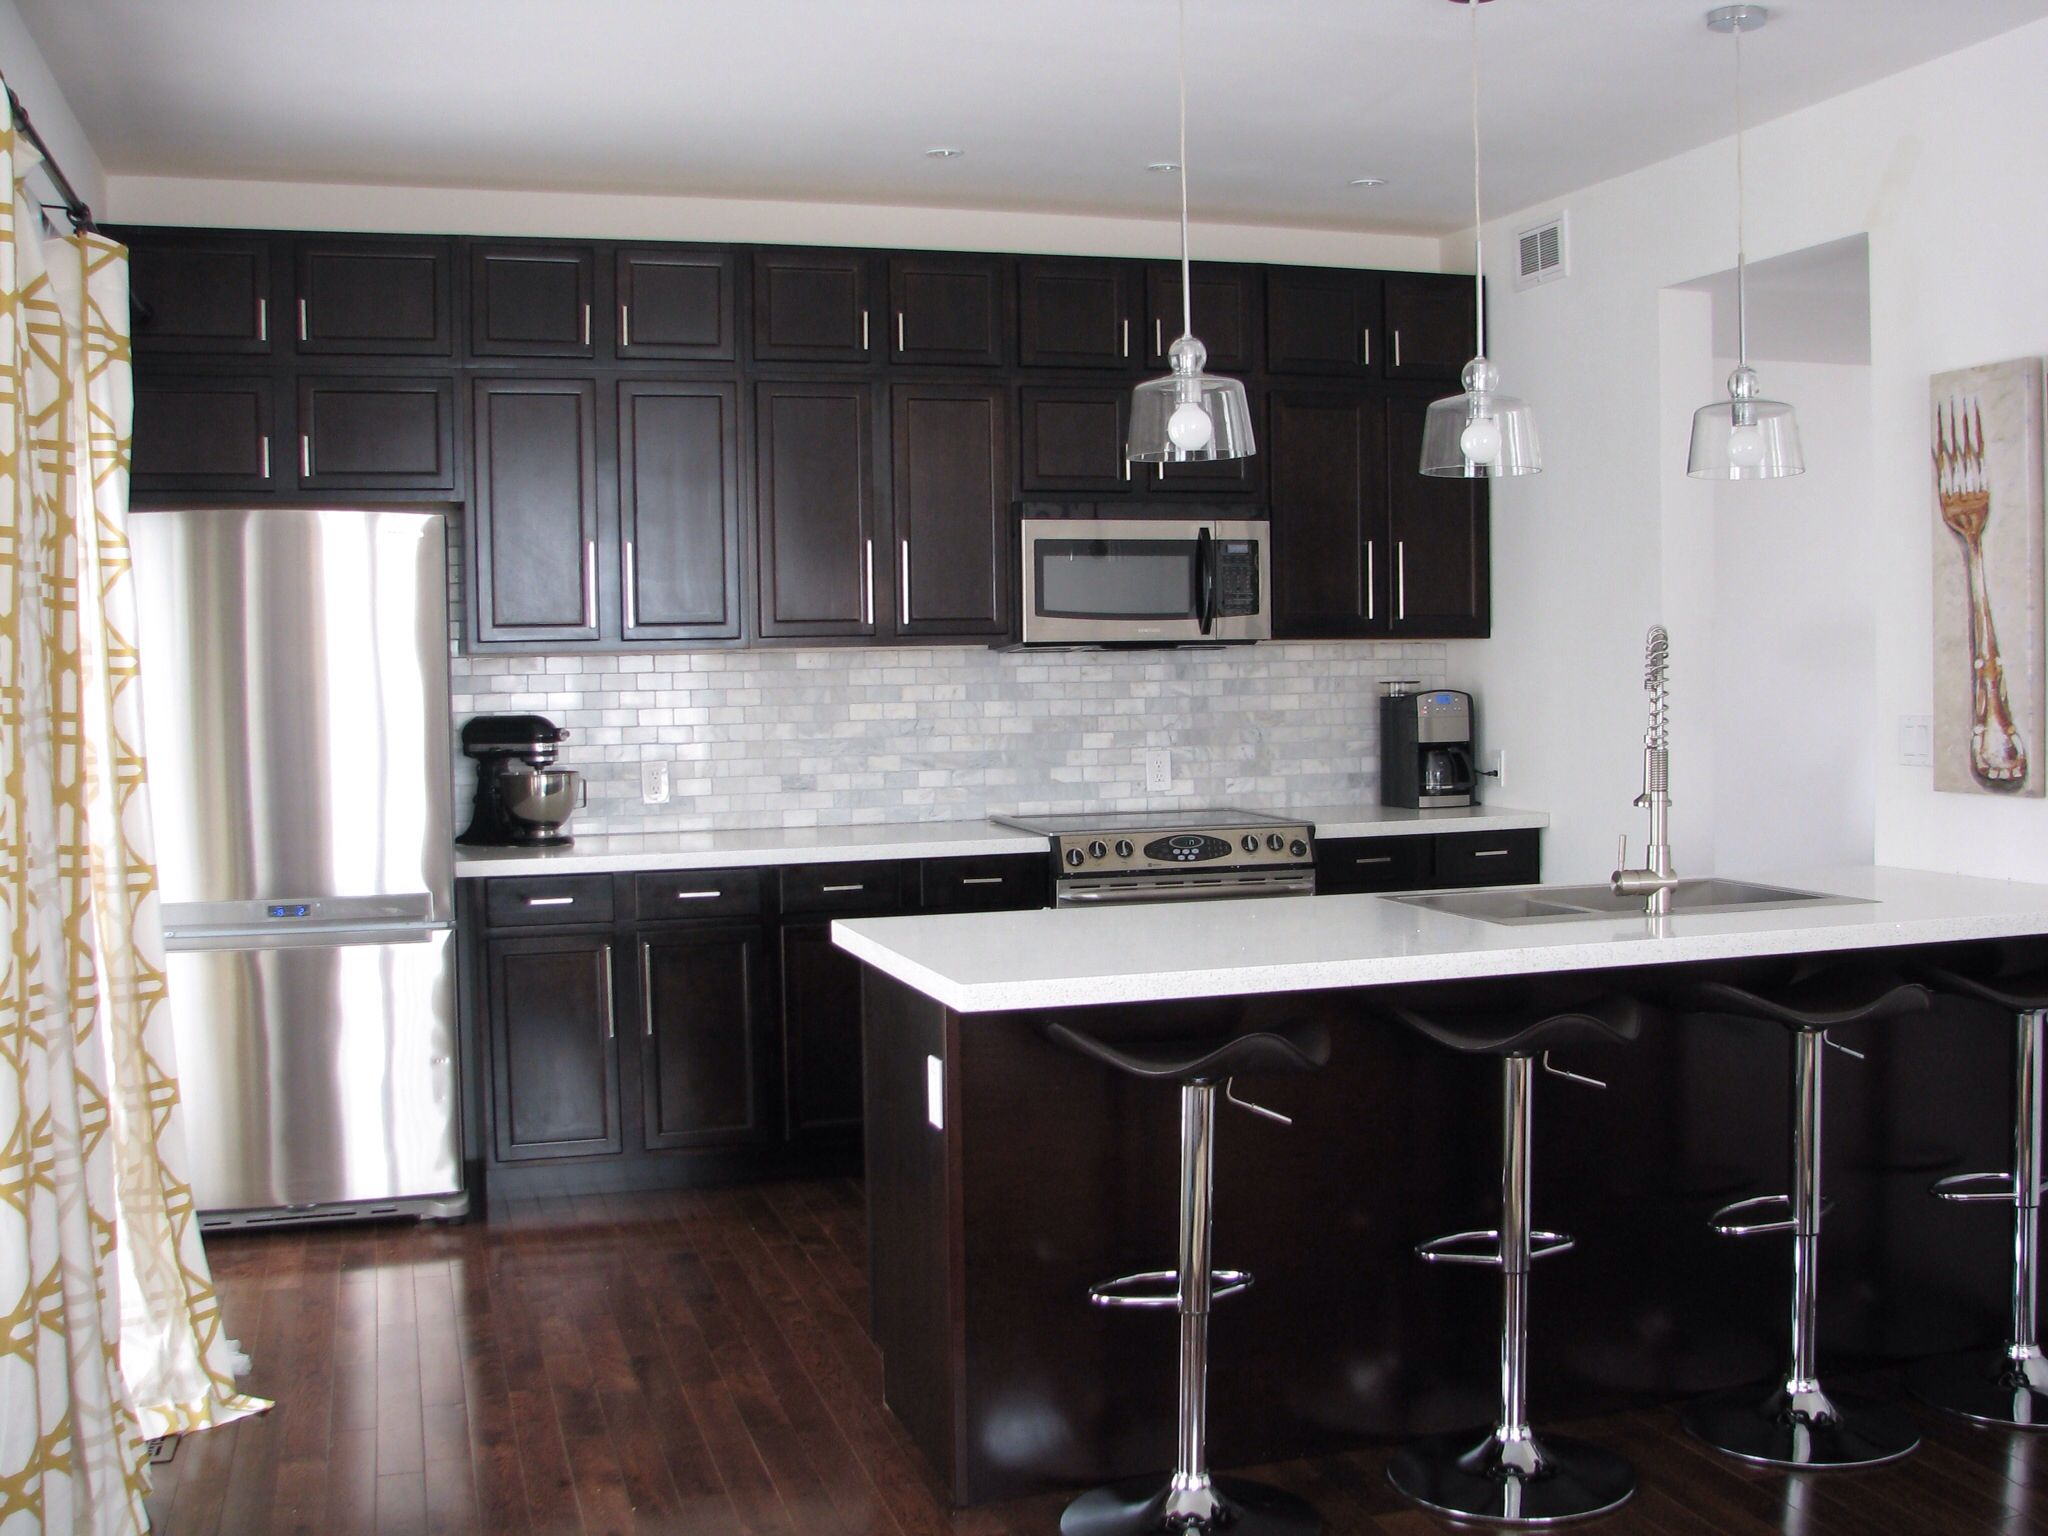 Kitchens With Brown Cabinets And Black Countertops